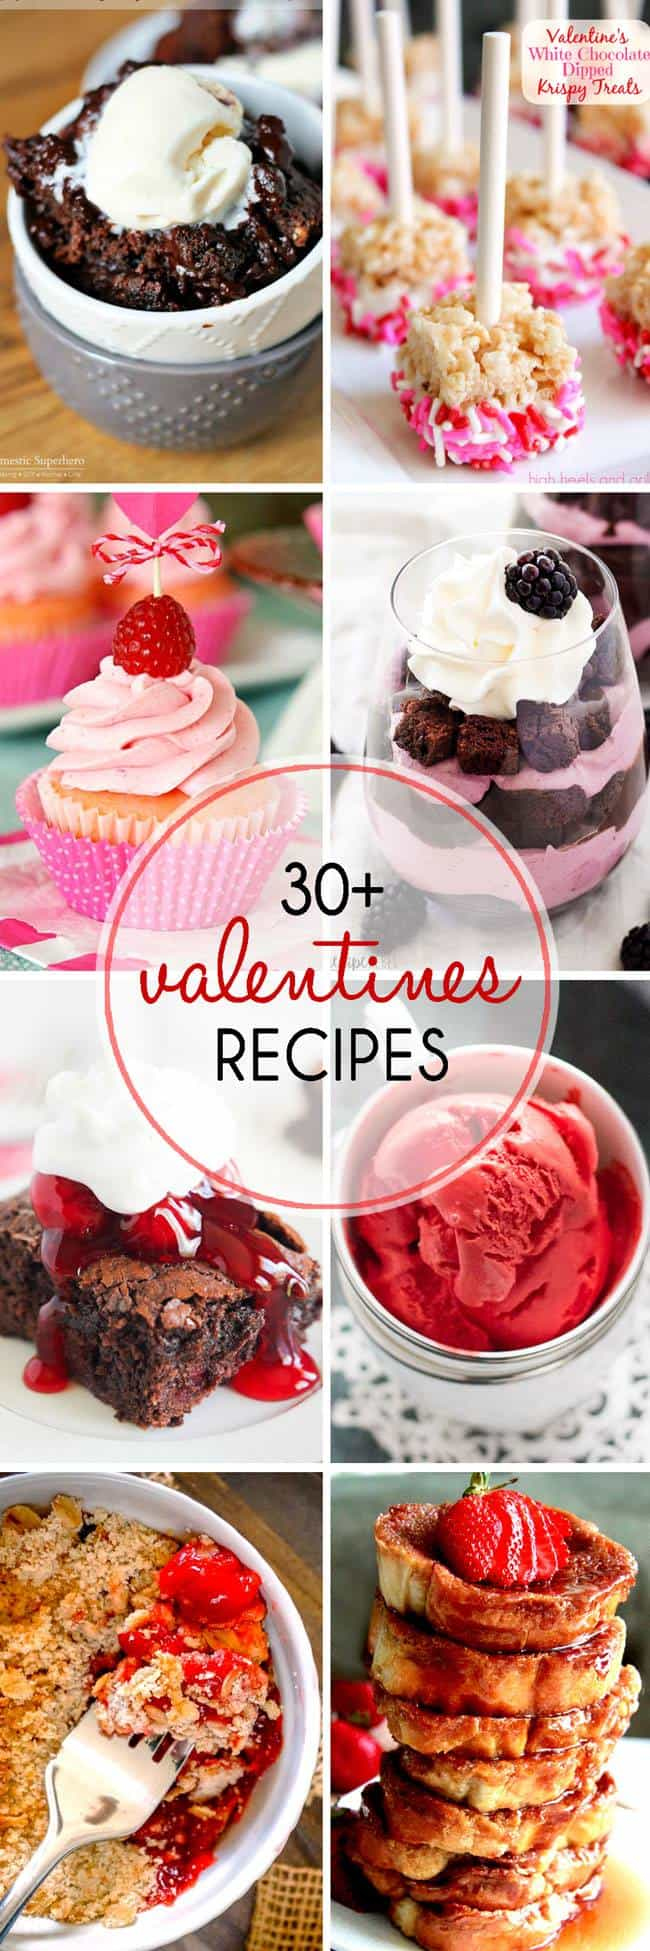 Over 30 Valentine's Day recipes that will make you swoon!  lemonsforlulu.com